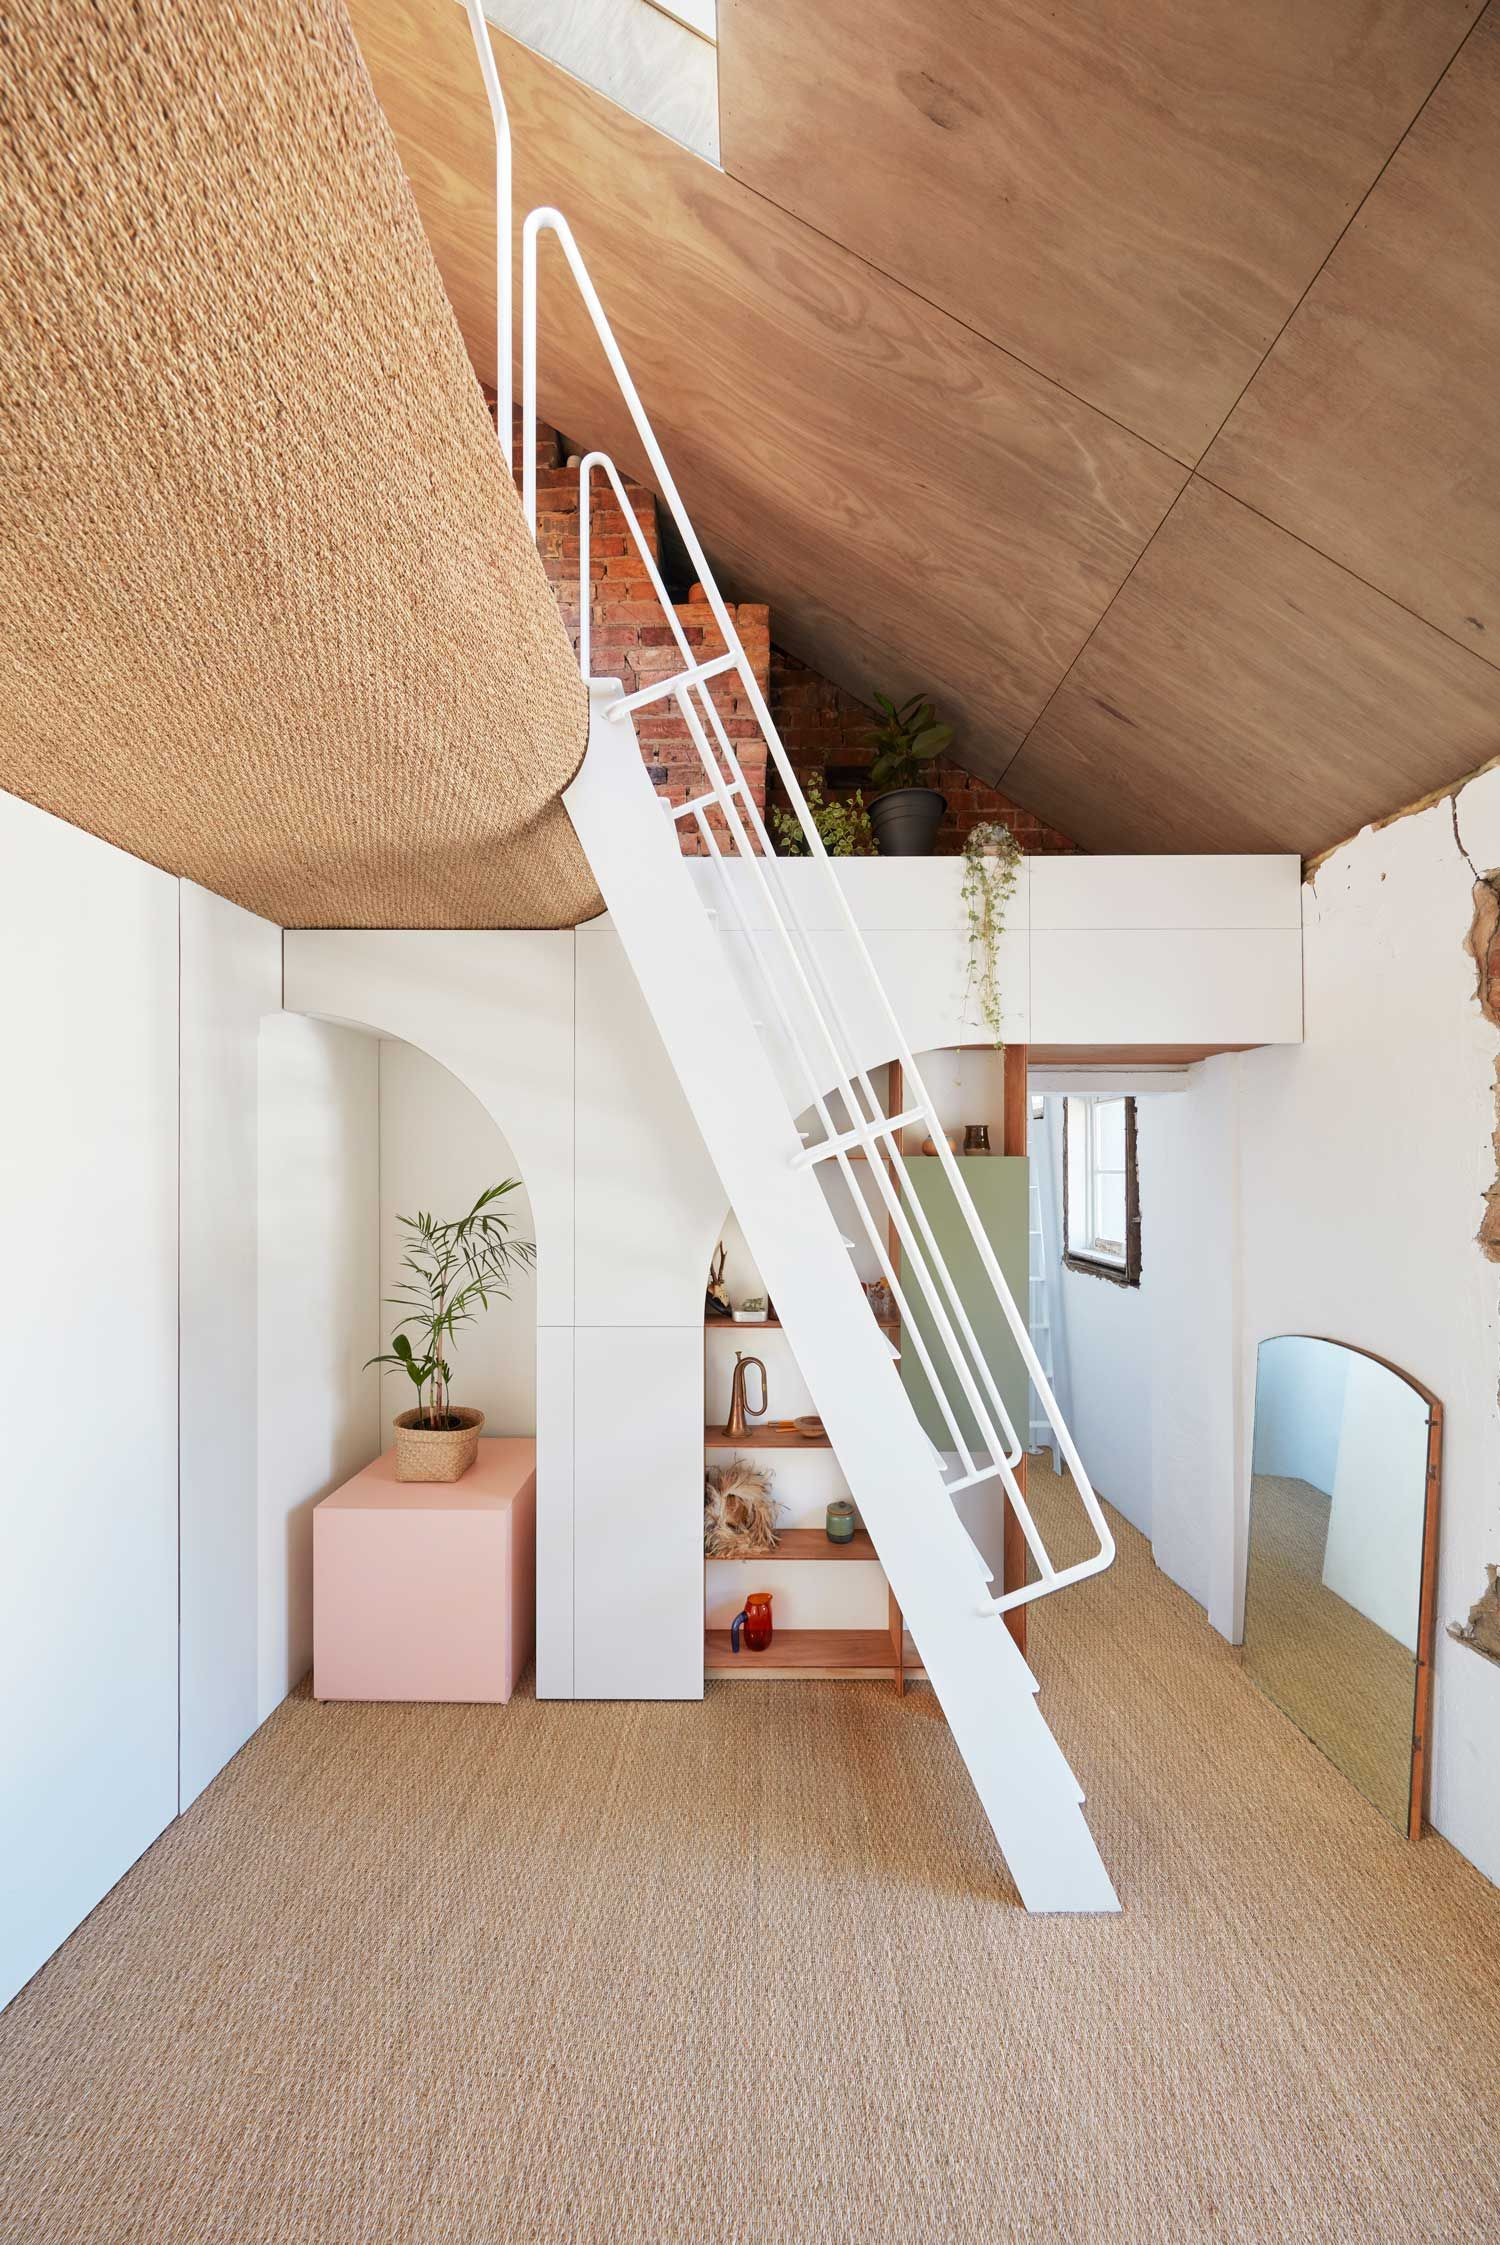 Hoa S House Conversion Of A 150 Year Old Melbourne Pub By Ioa Studio House Home Design